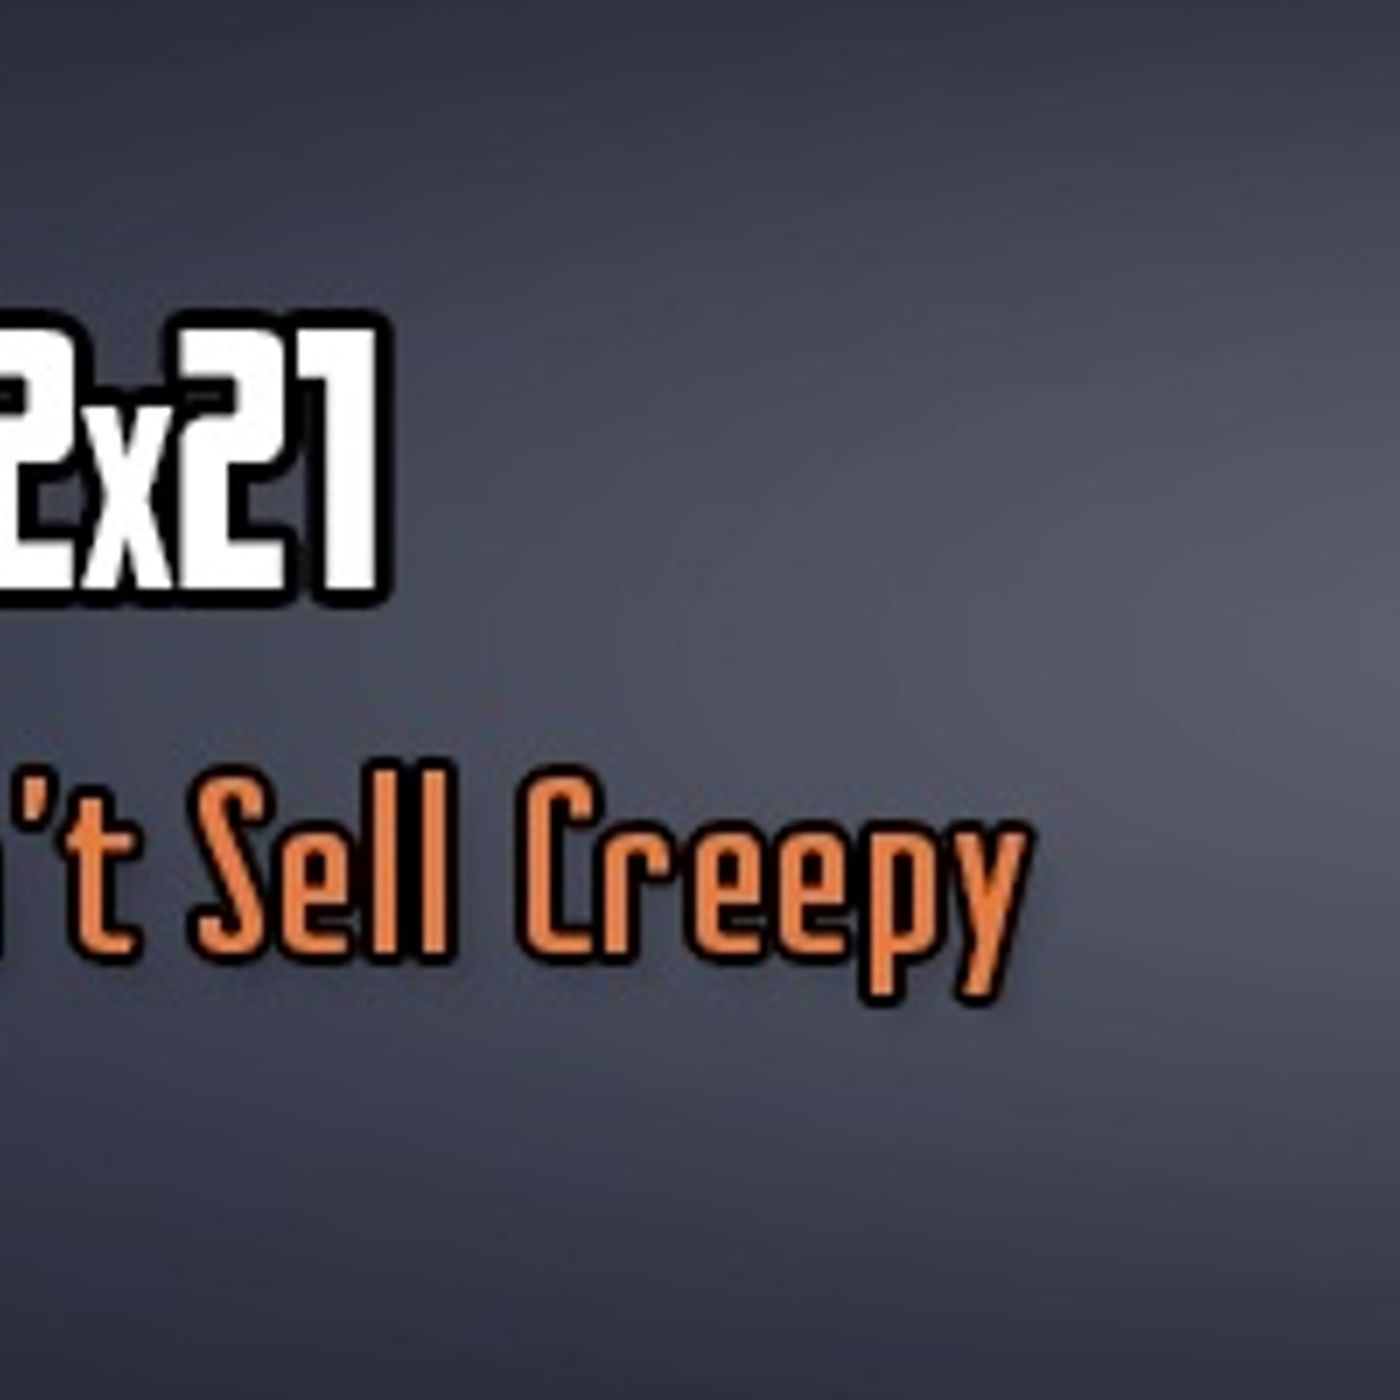 SMC 2x21: You Can't Sell Creepy